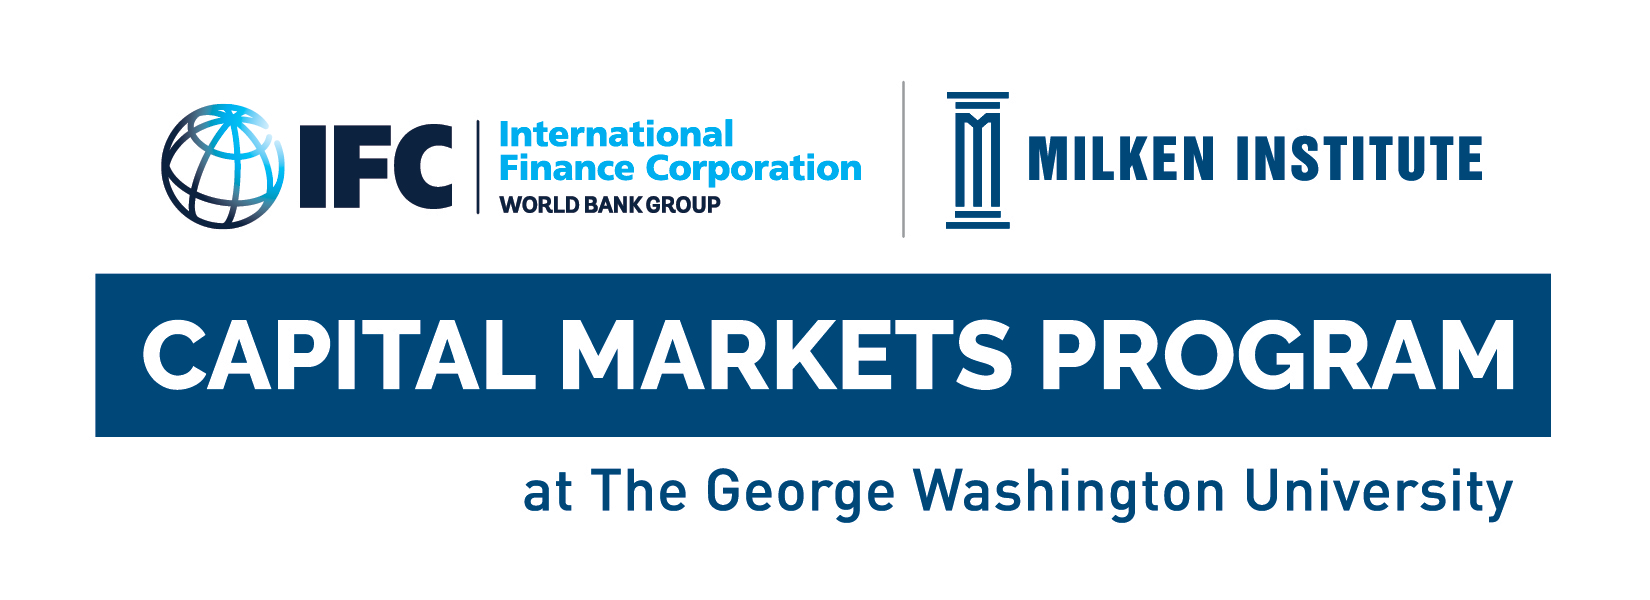 IFC-Milken Institute Capital Markets Program